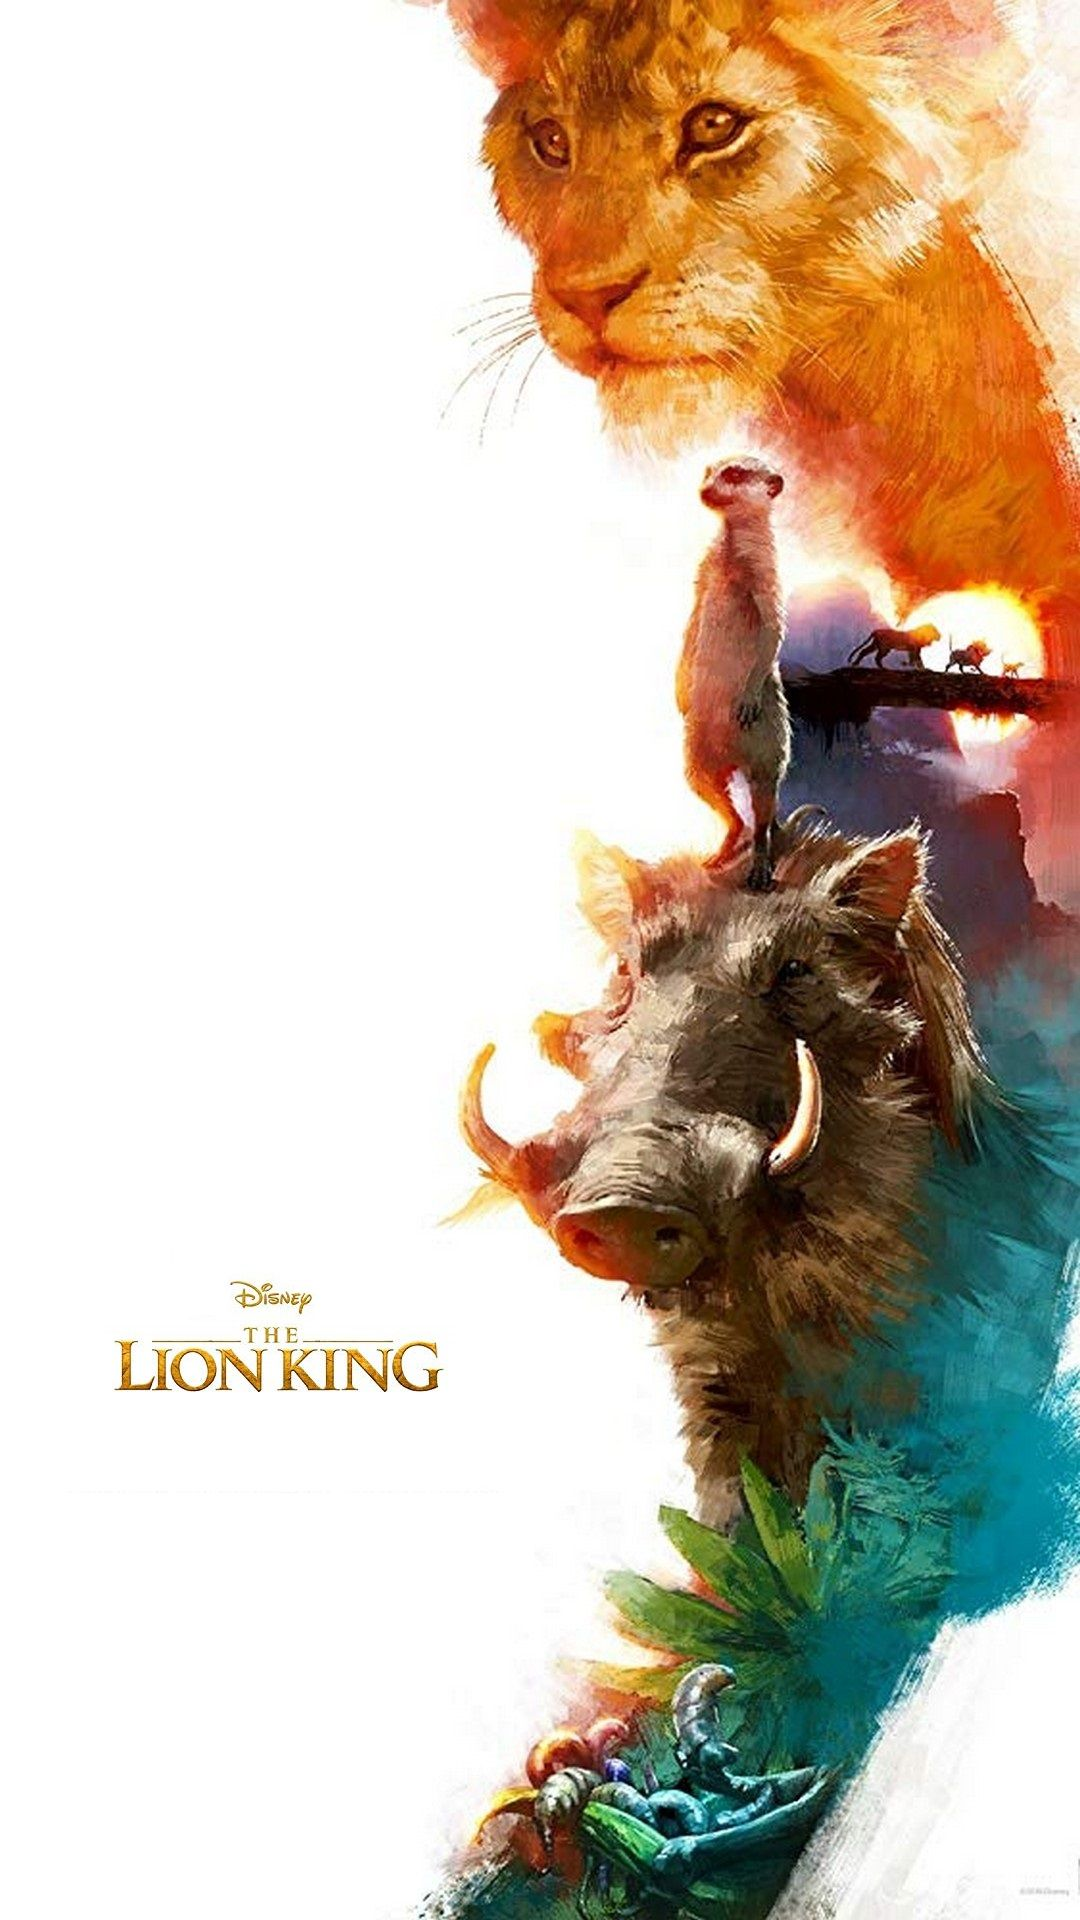 The Lion King 2019 Movie Poster Best Movie Poster Wallpaper Hd Lion King Art Lion King Movie Posters Lock screen lion king wallpaper hd 2019